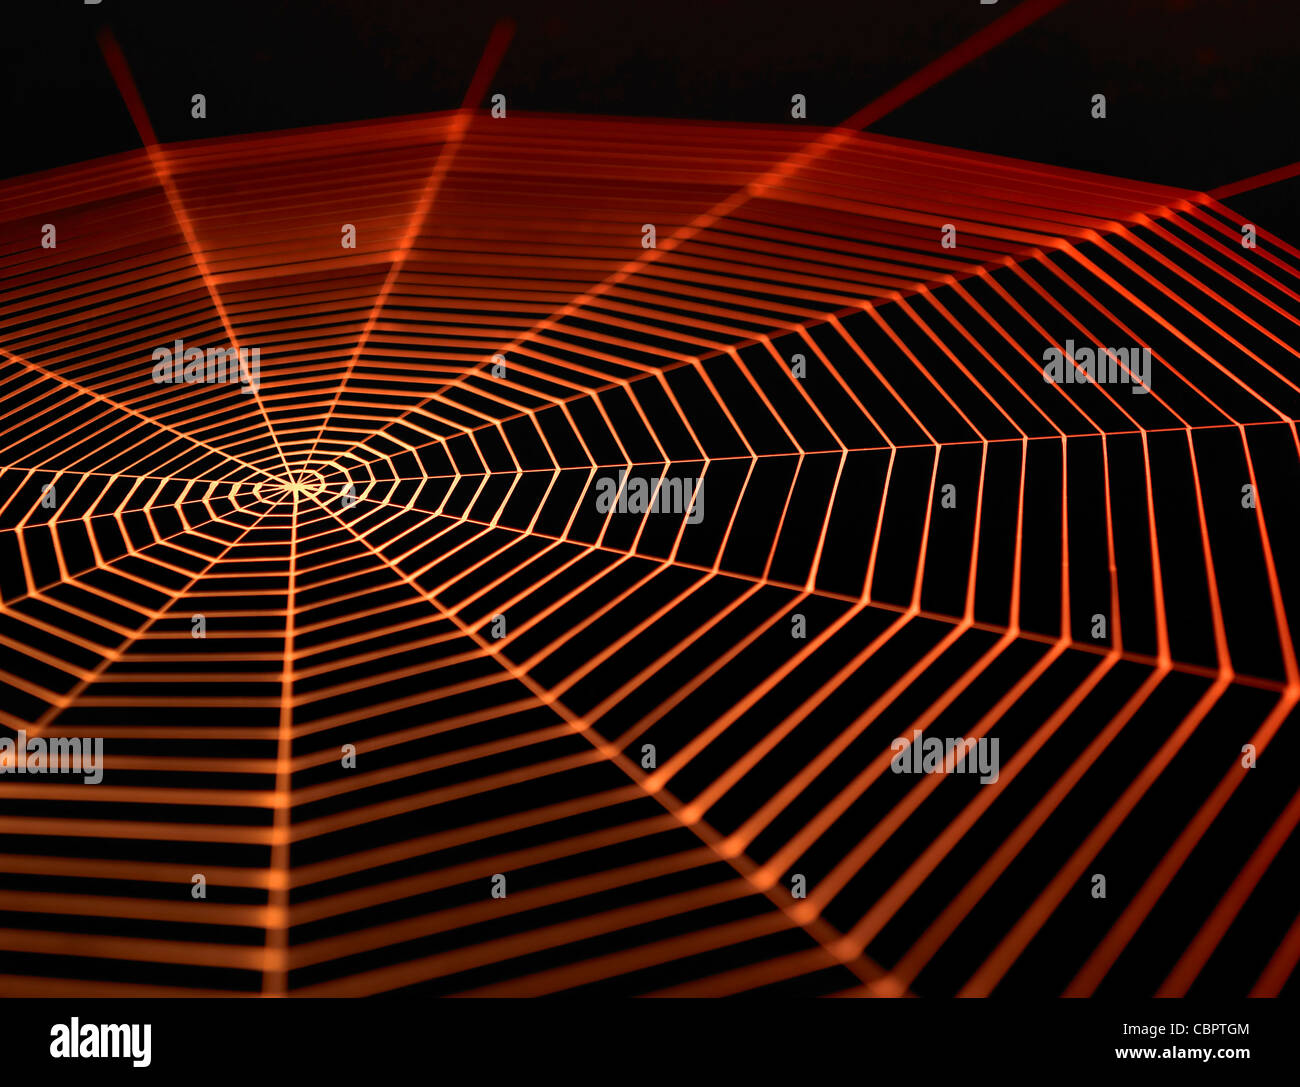 full frame symbolic picture with a painted spiderweb in dark back, orange illuminated - Stock Image